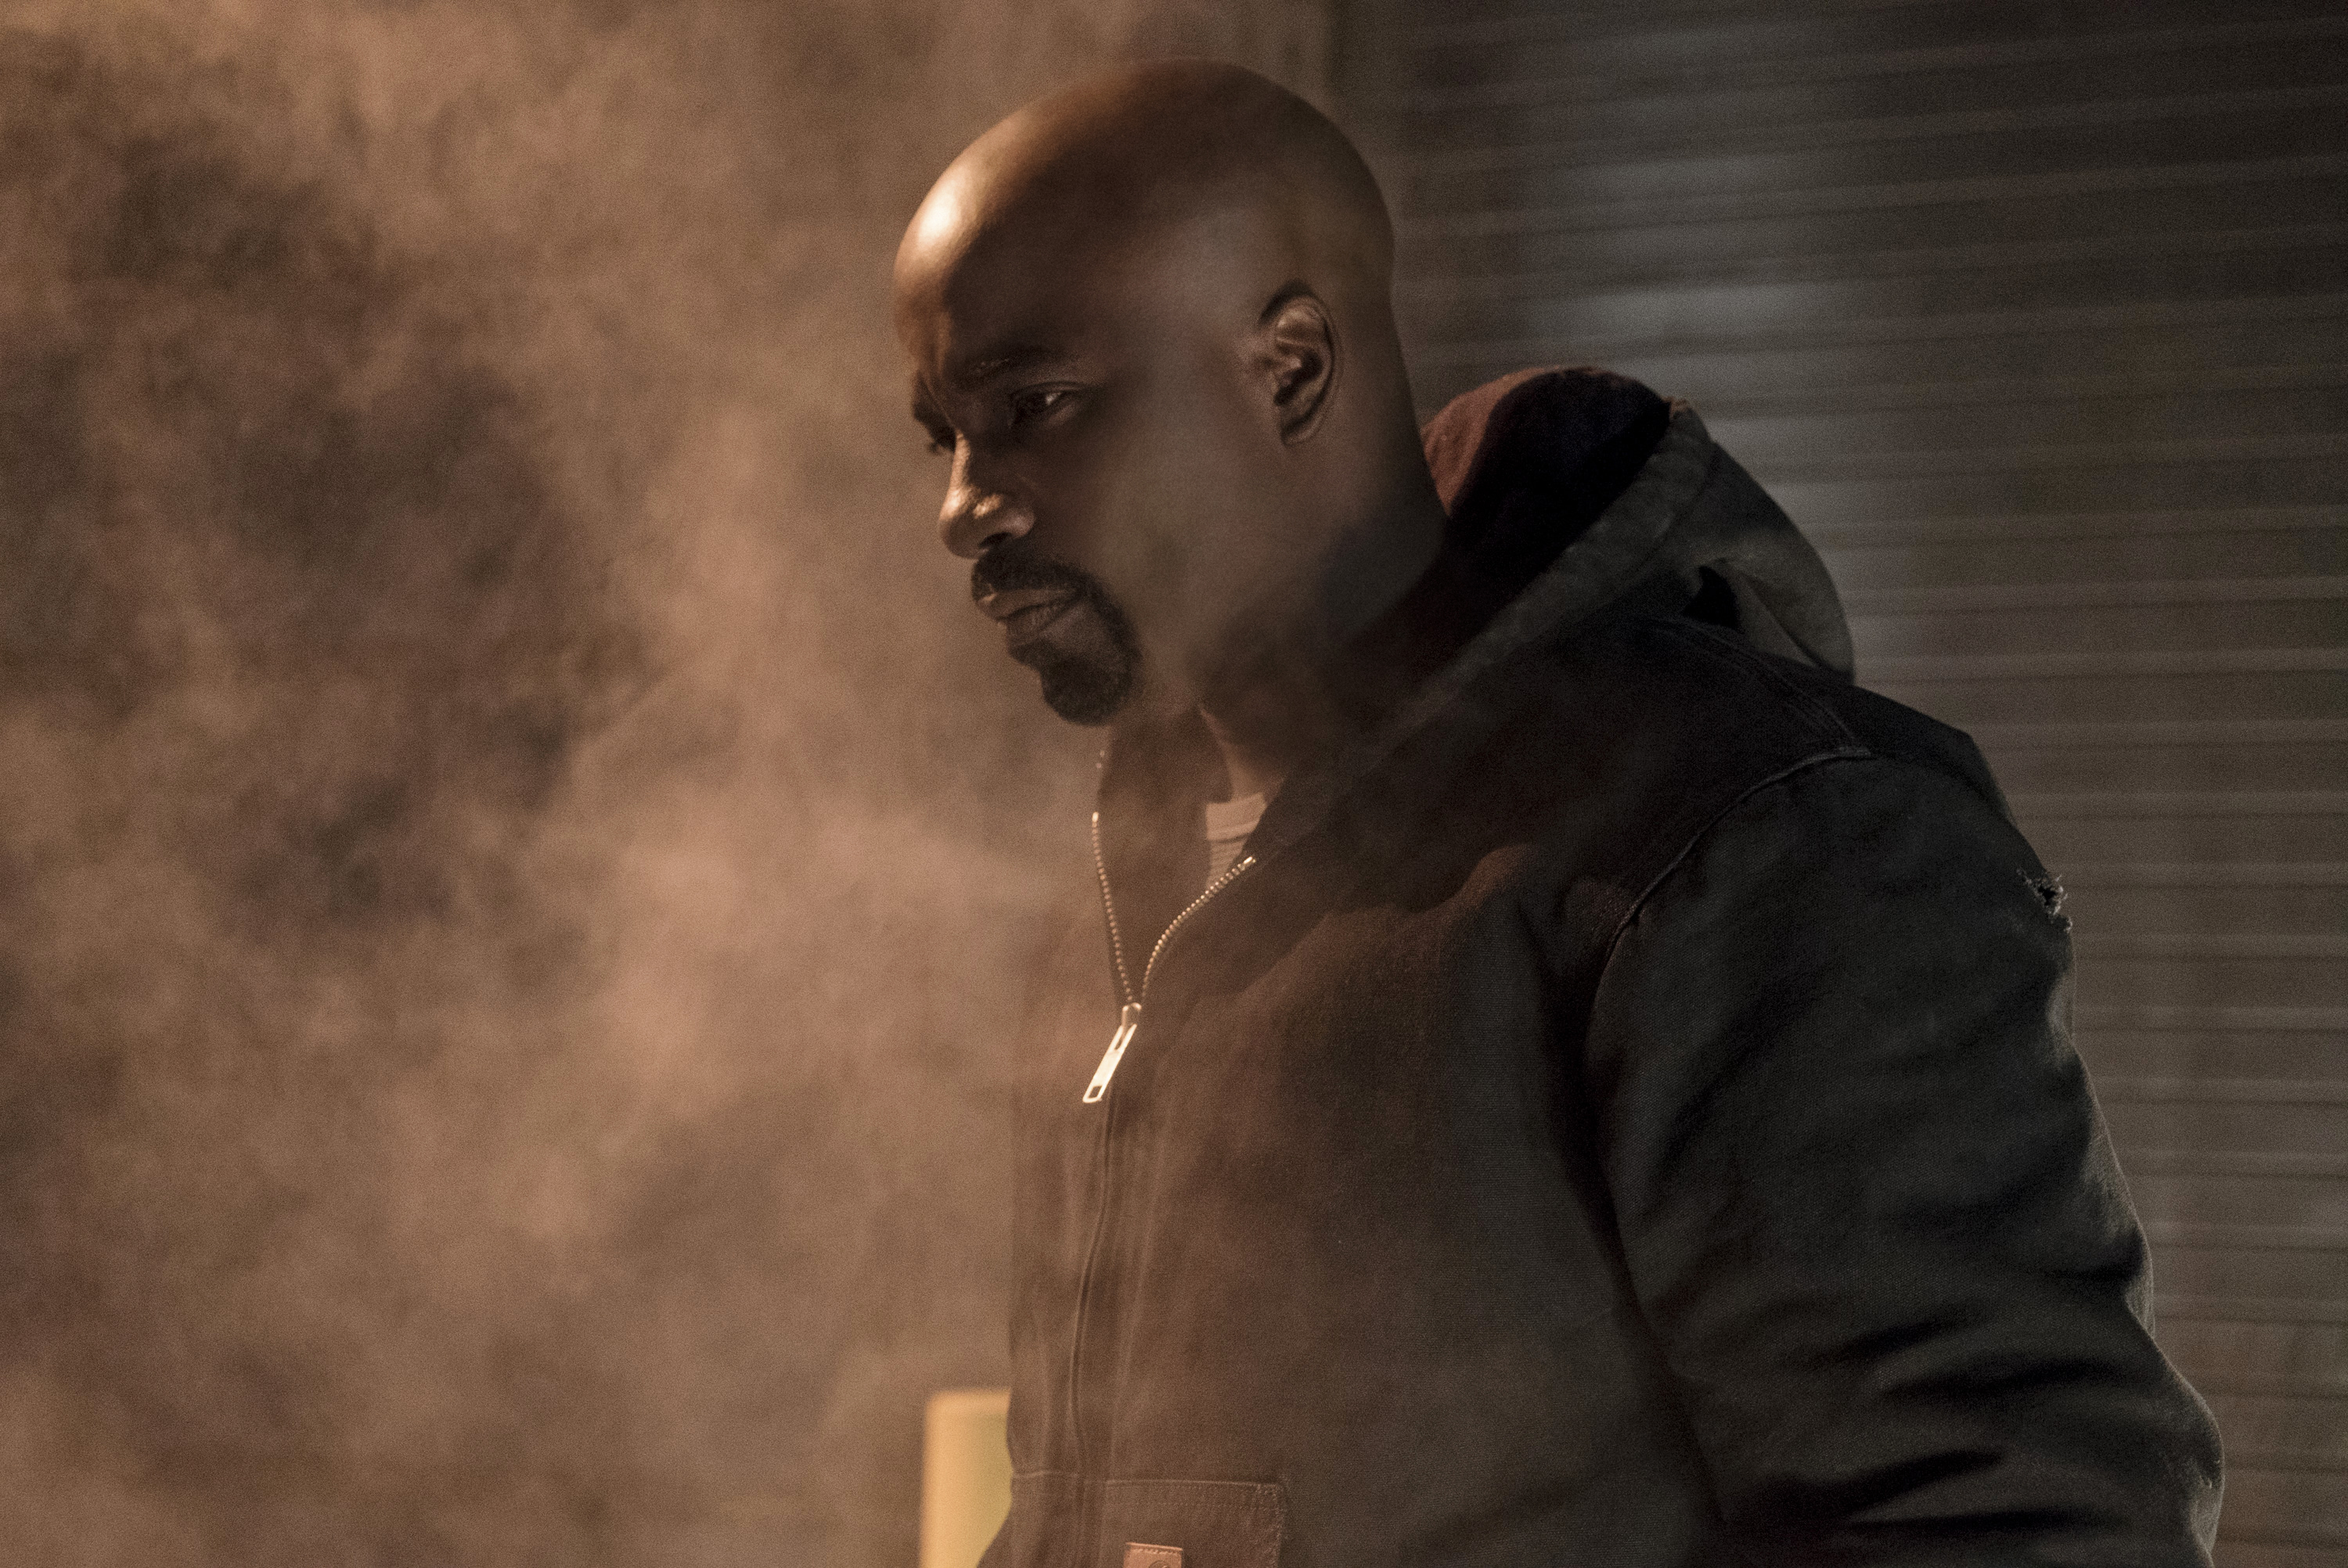 Marvel's Luke Cage is so popular, it actually caused Netflix to crash